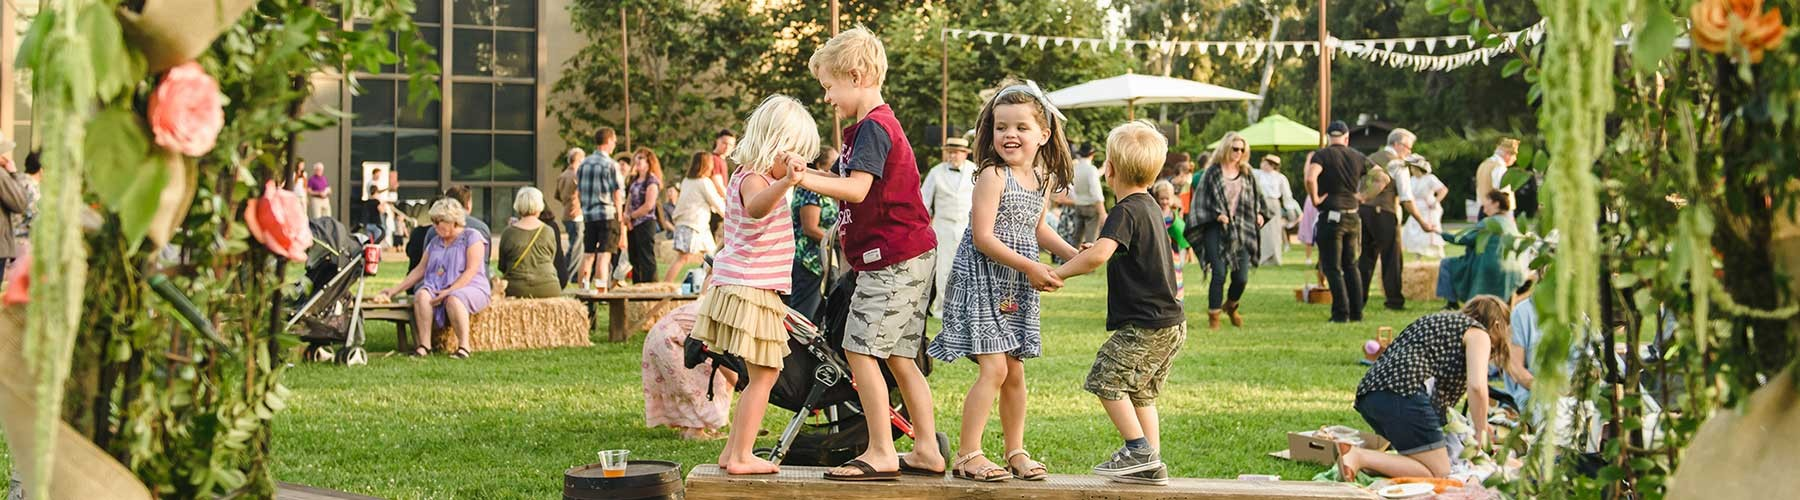 children playing at Member event